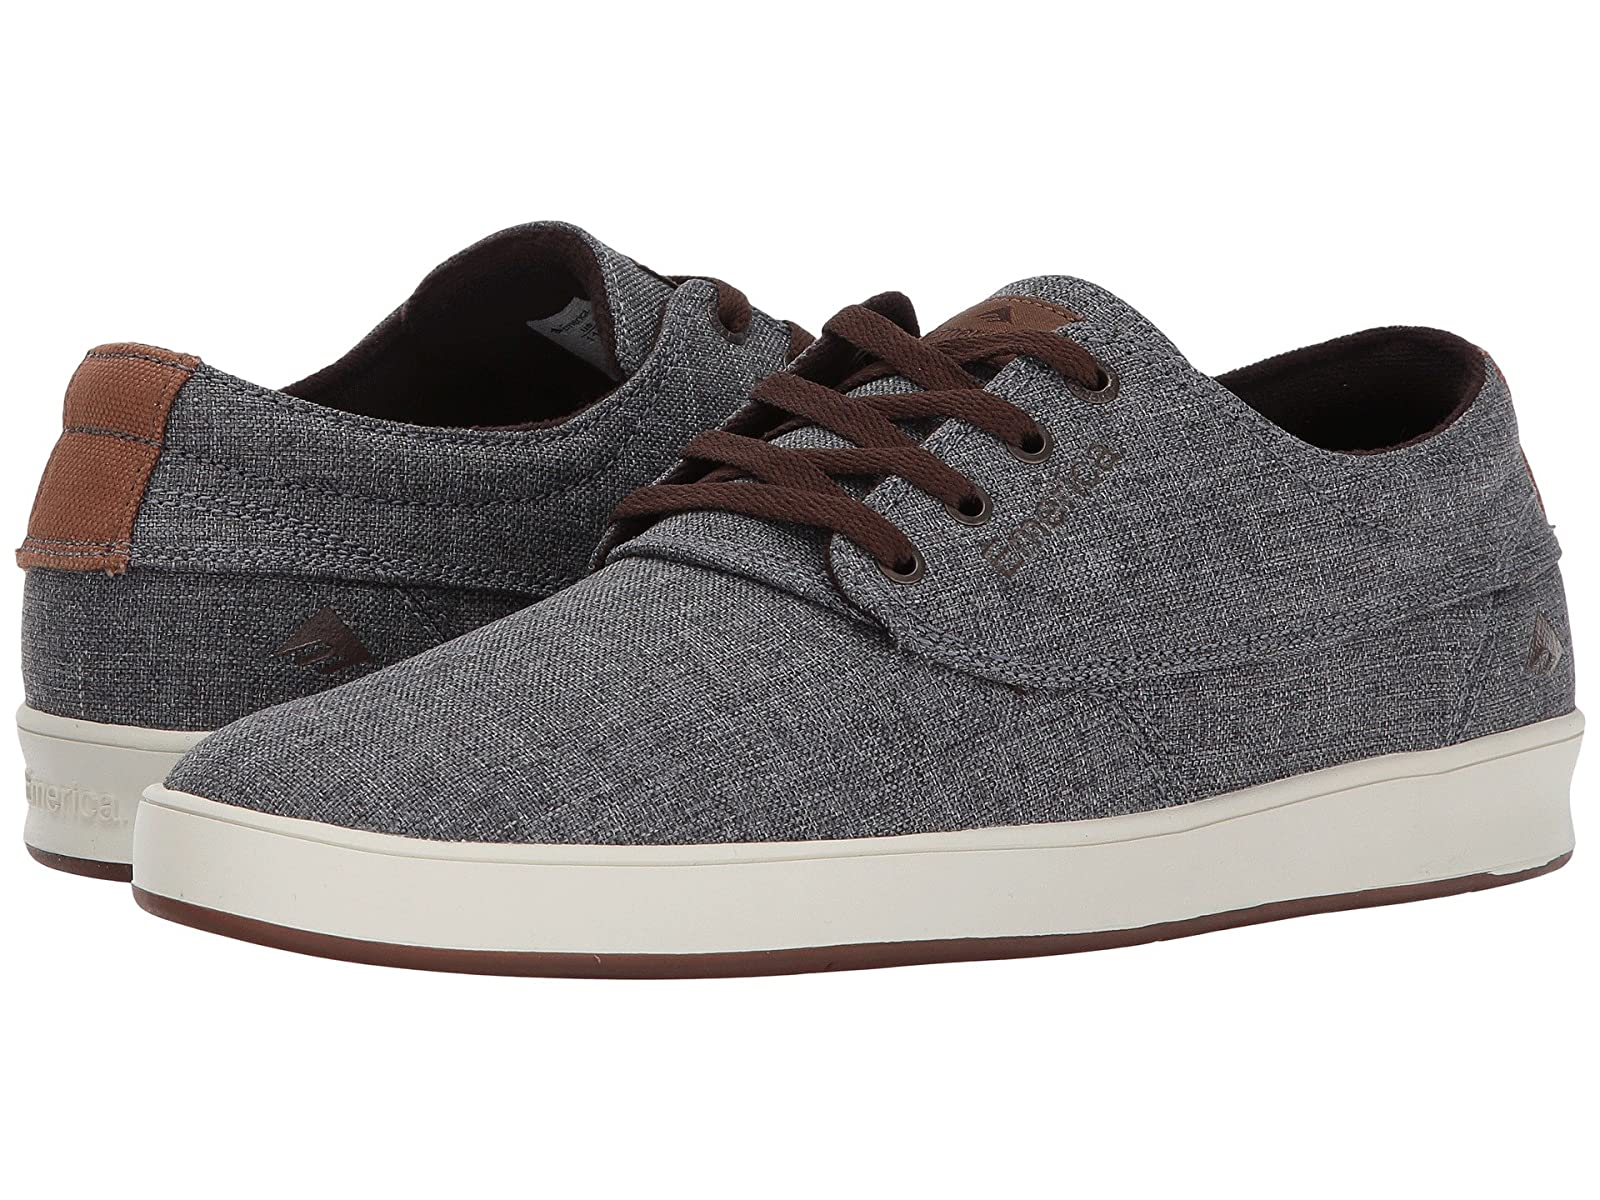 Emerica EmeryAtmospheric grades have affordable shoes